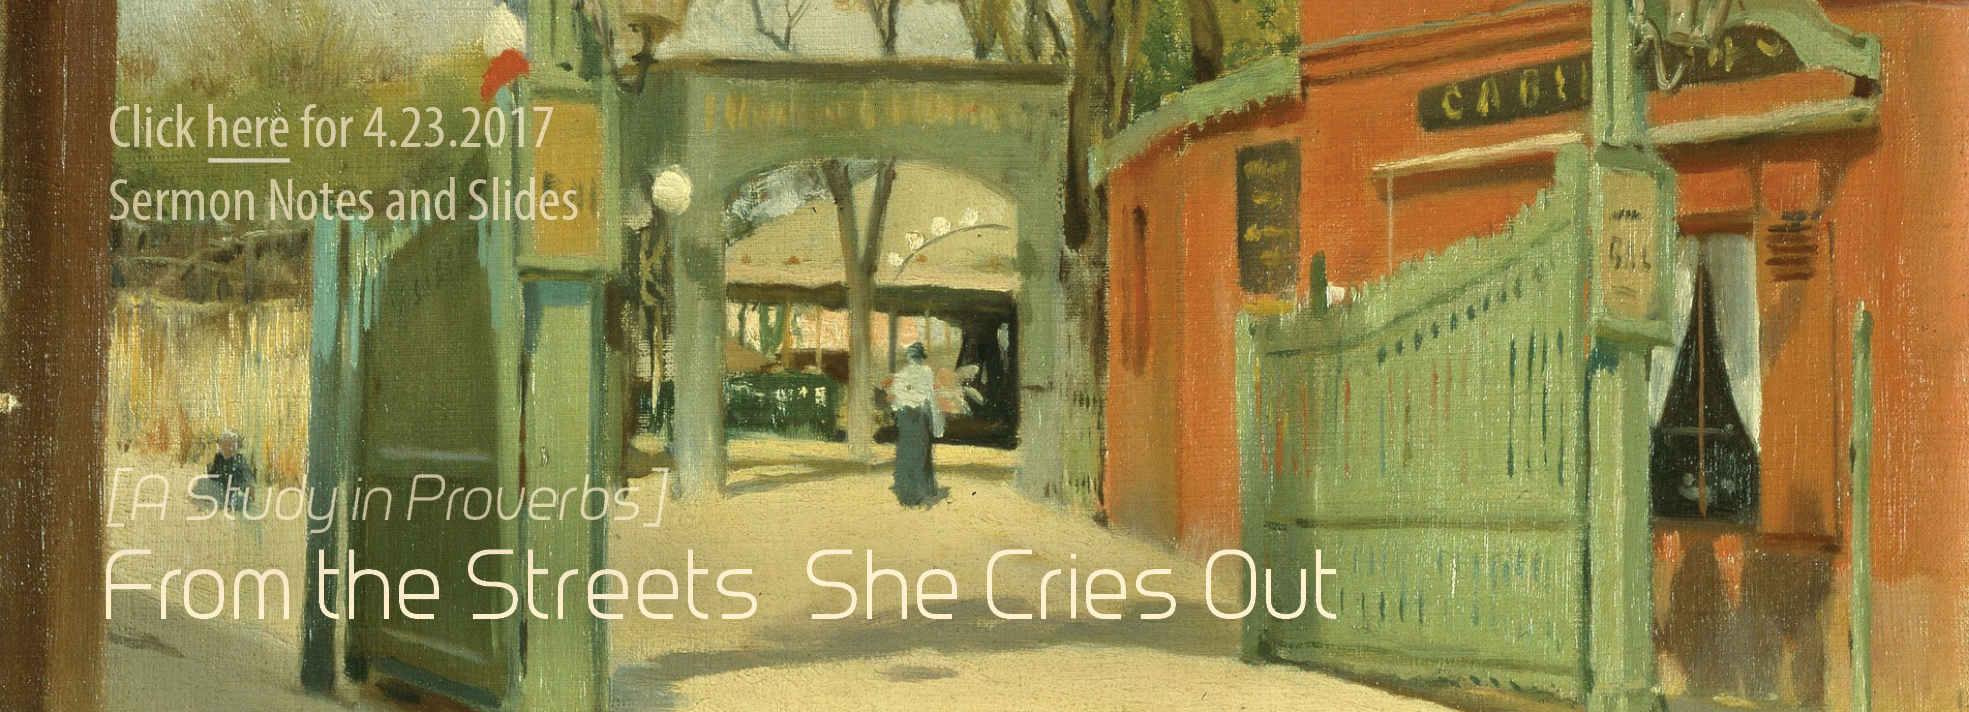 From the Streets She Cries Out